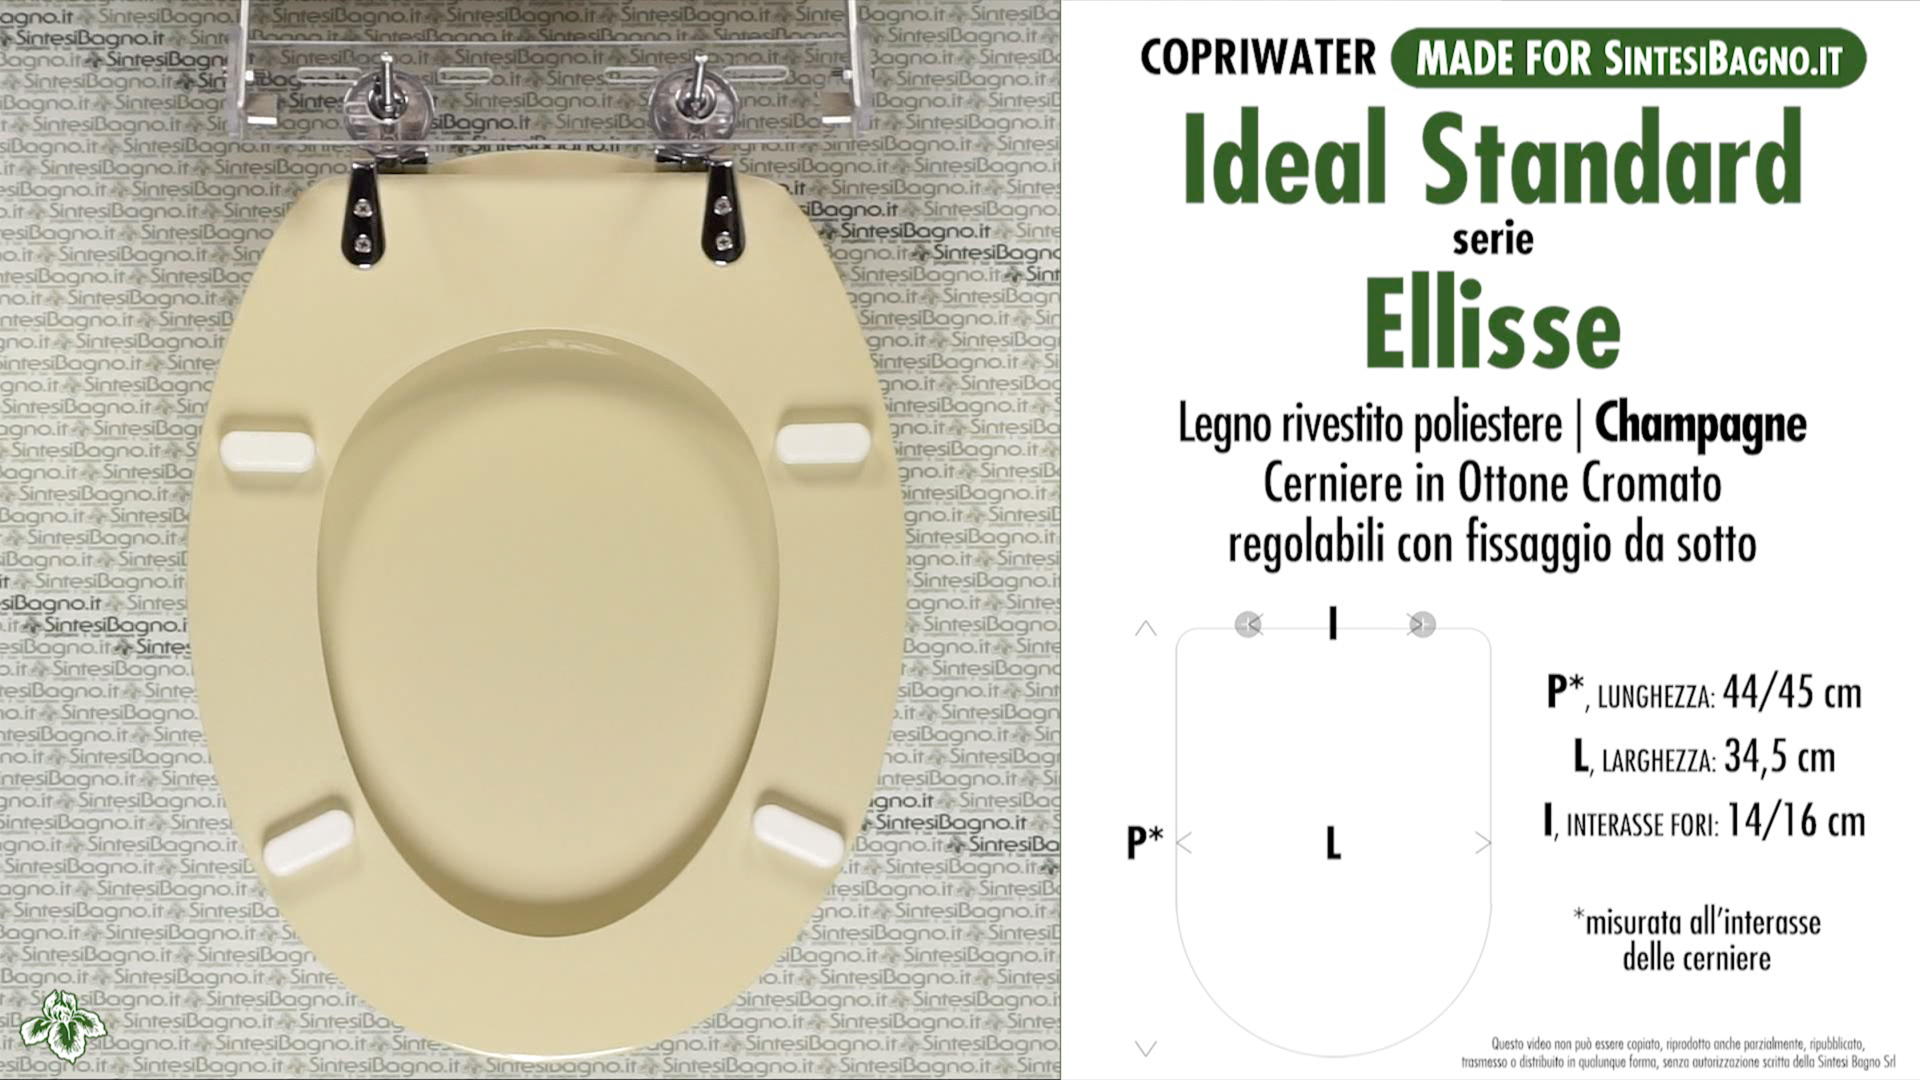 Copriwater per wc ellisse ideal standard champagne for Modelli water ideal standard